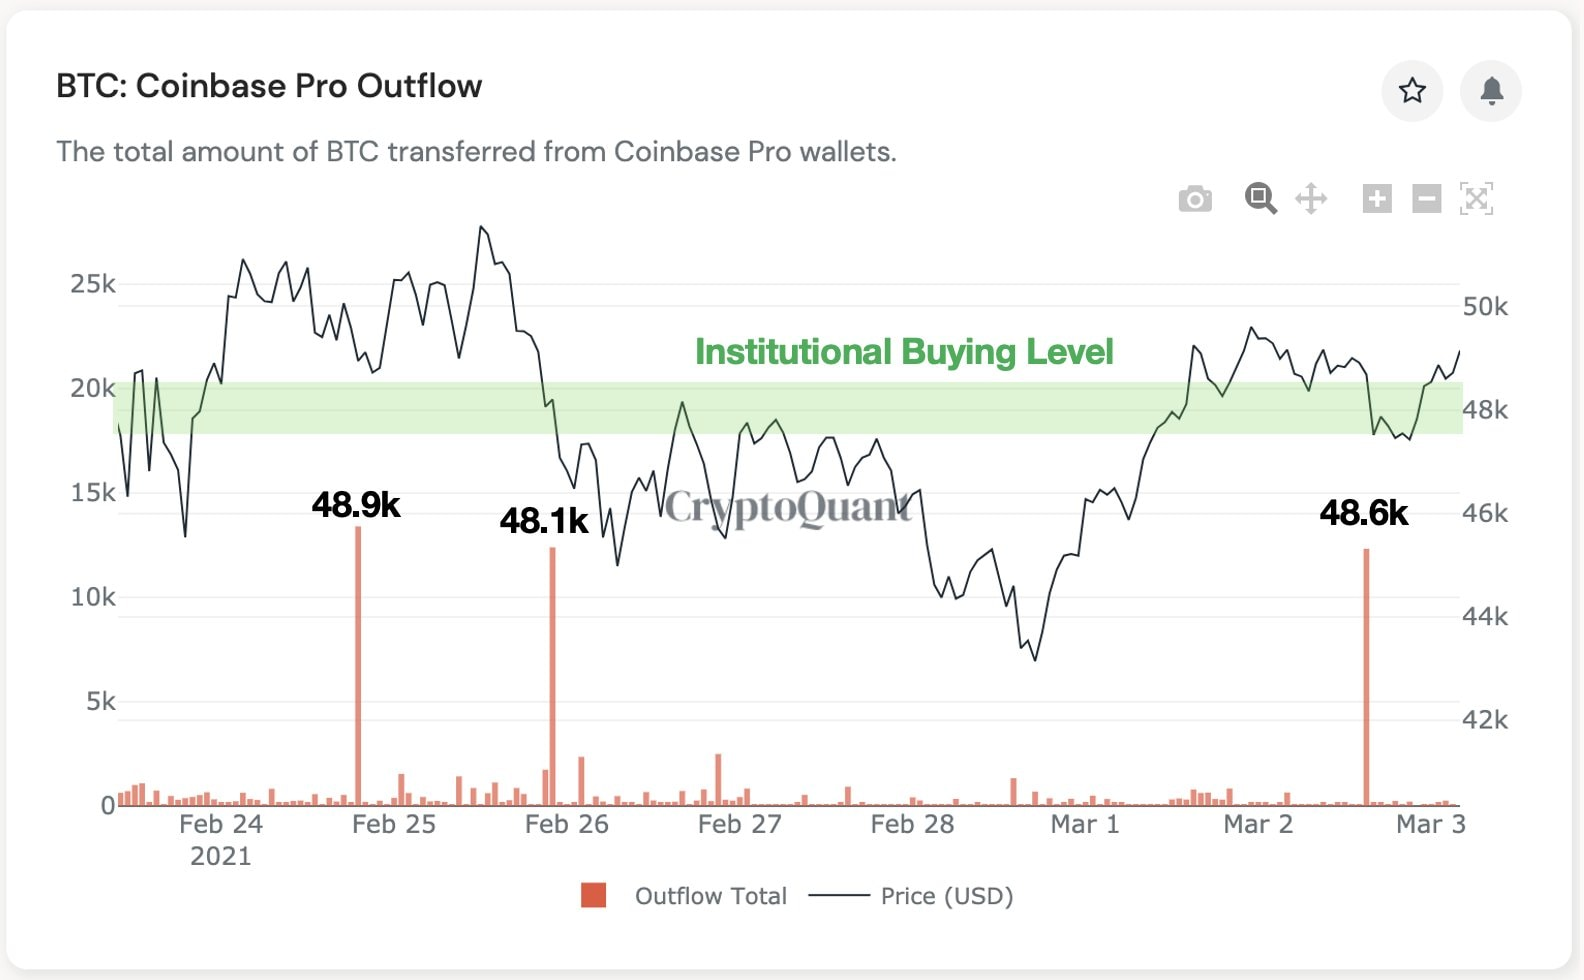 Coinbase Pro Outflow